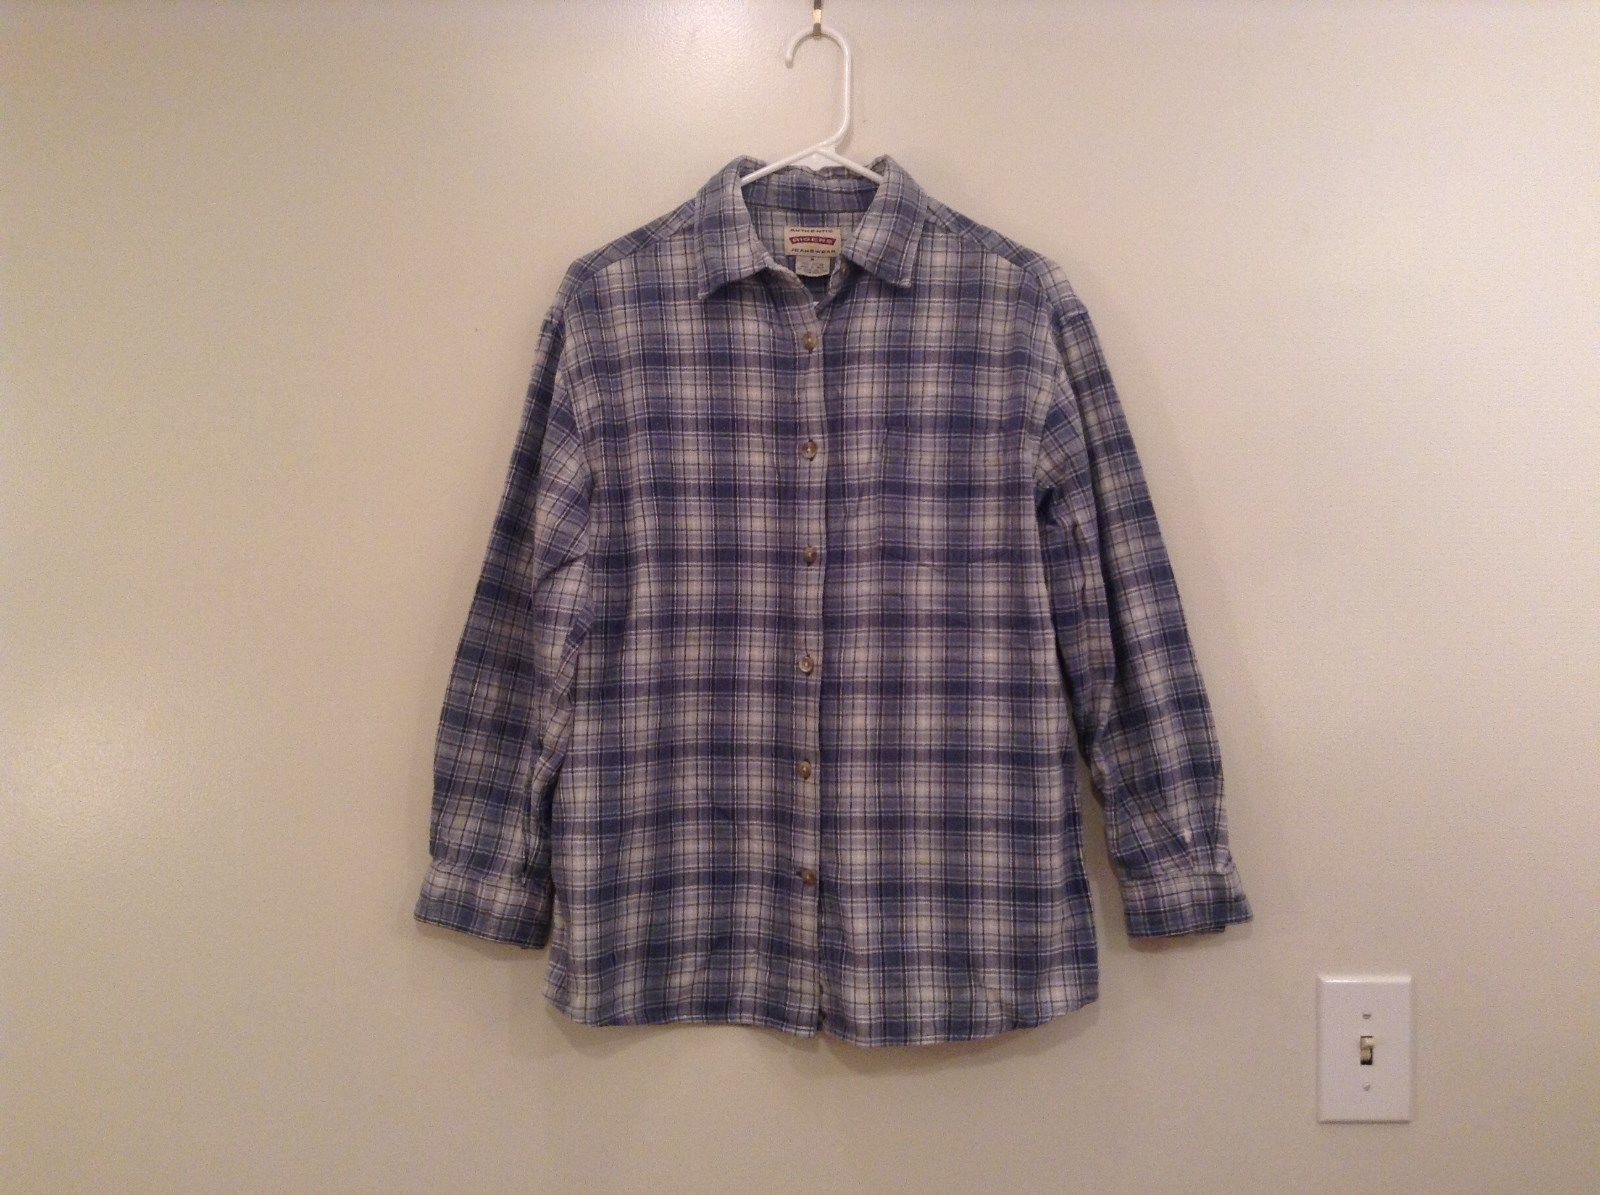 Long Sleeve Button Up Riders Jeanswear Lavender Blue White Plaid Shirt Size M